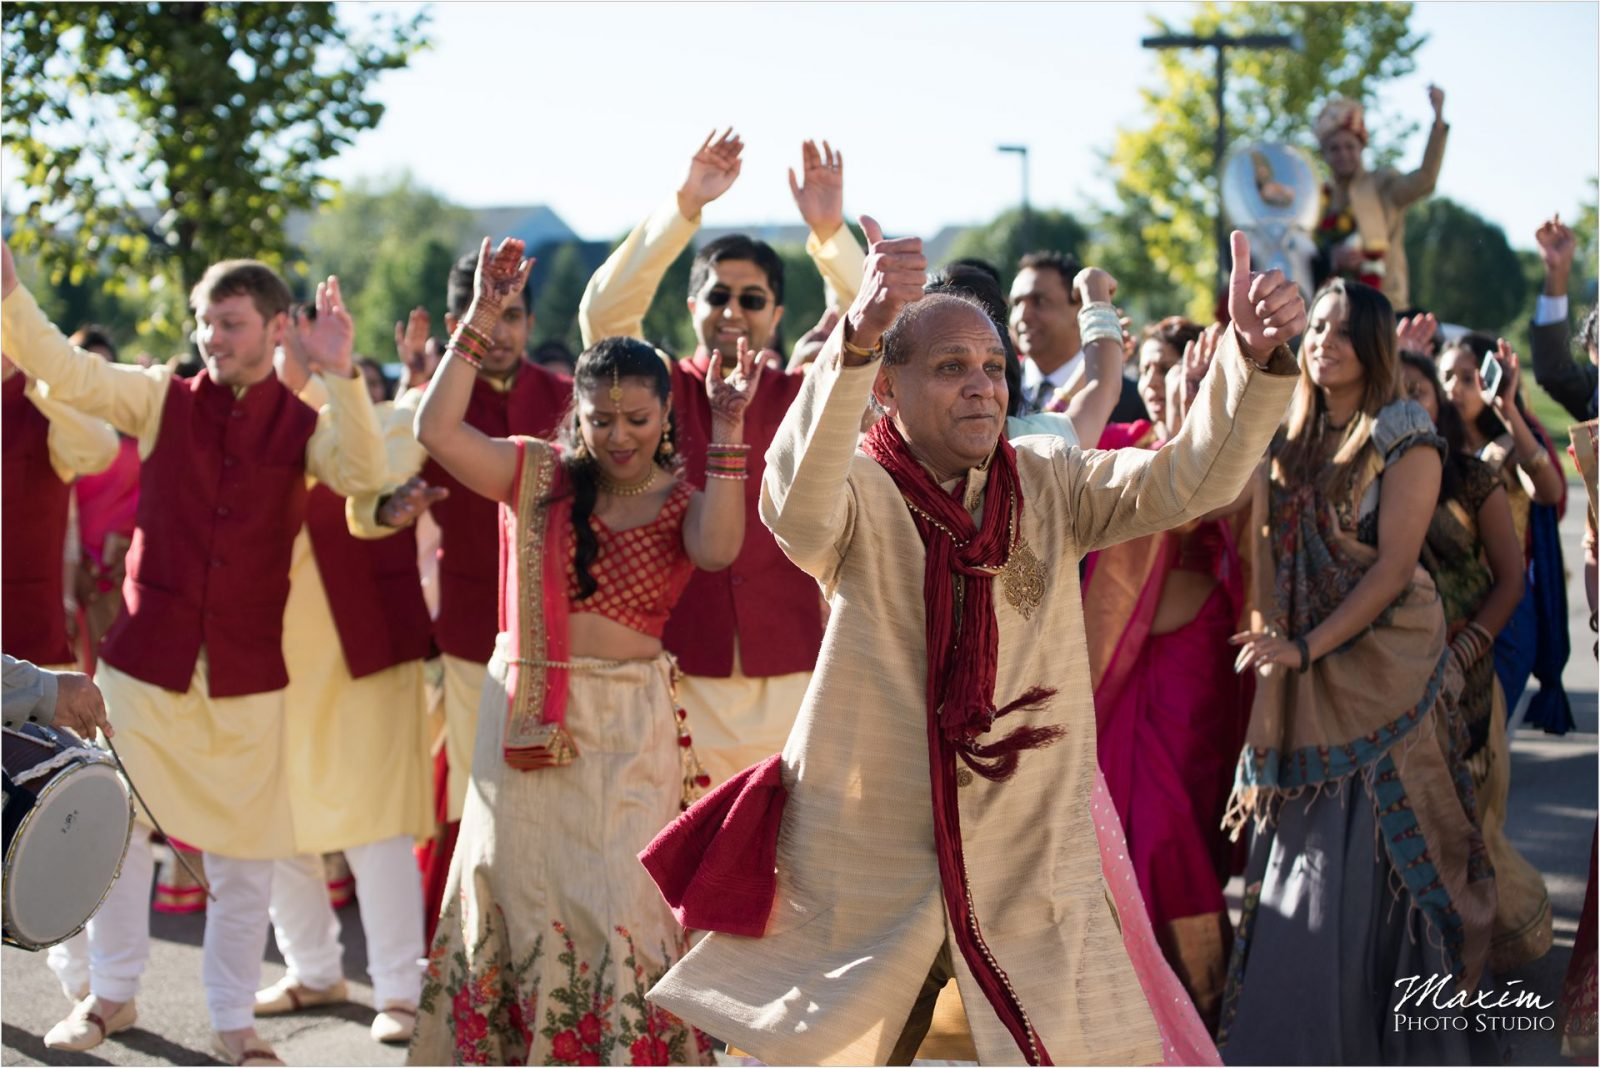 Baraat Hindu Wedding Ceremony Hindu Temple Dayton Groomsmen